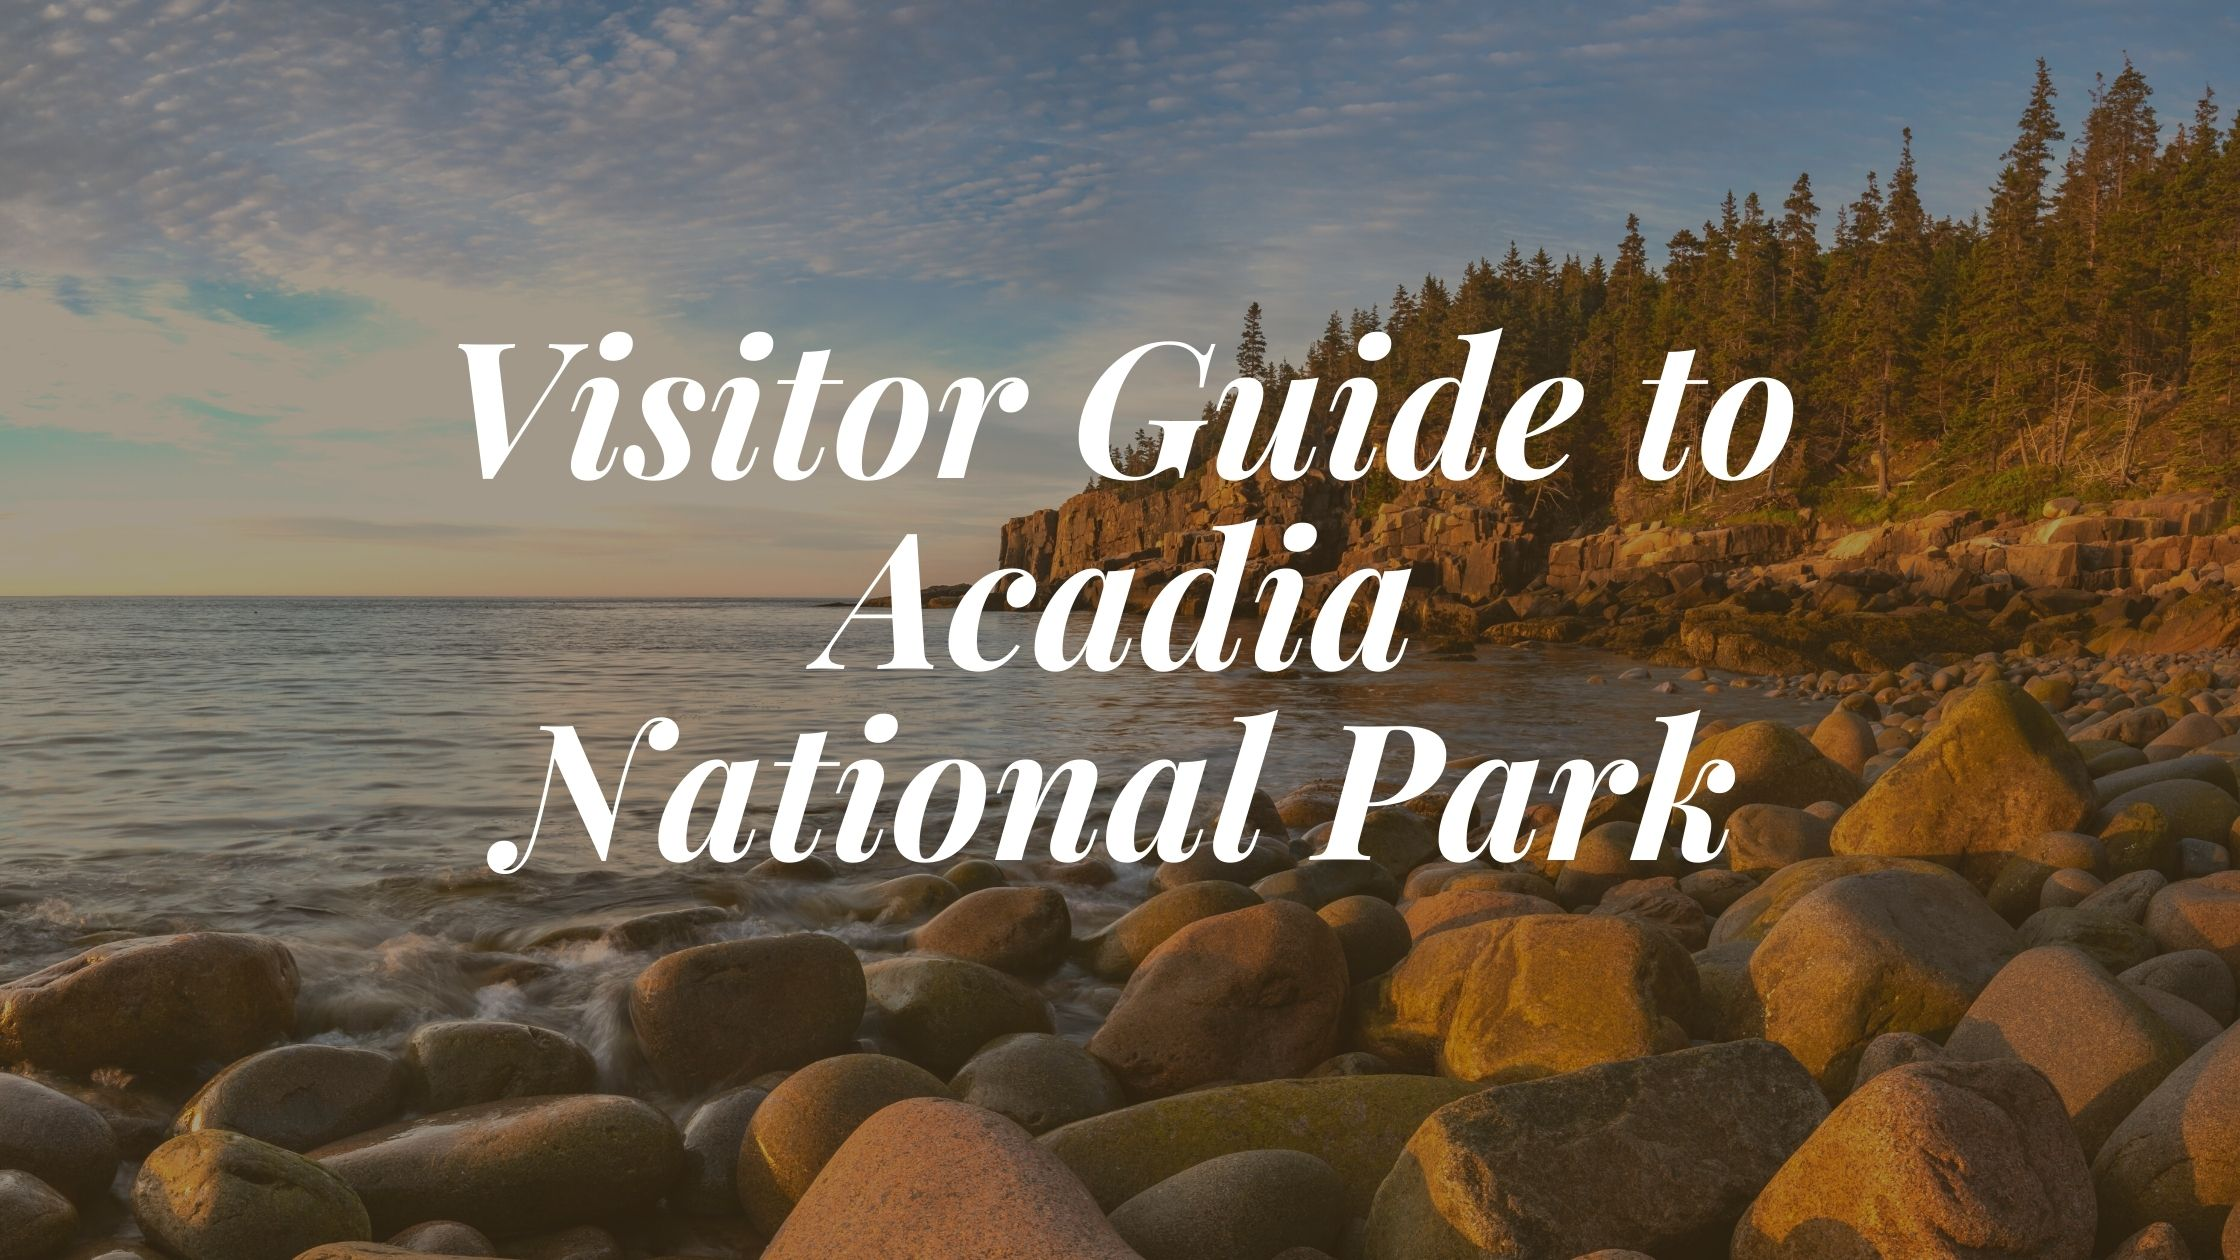 Visitor Guide to Acadia National Park